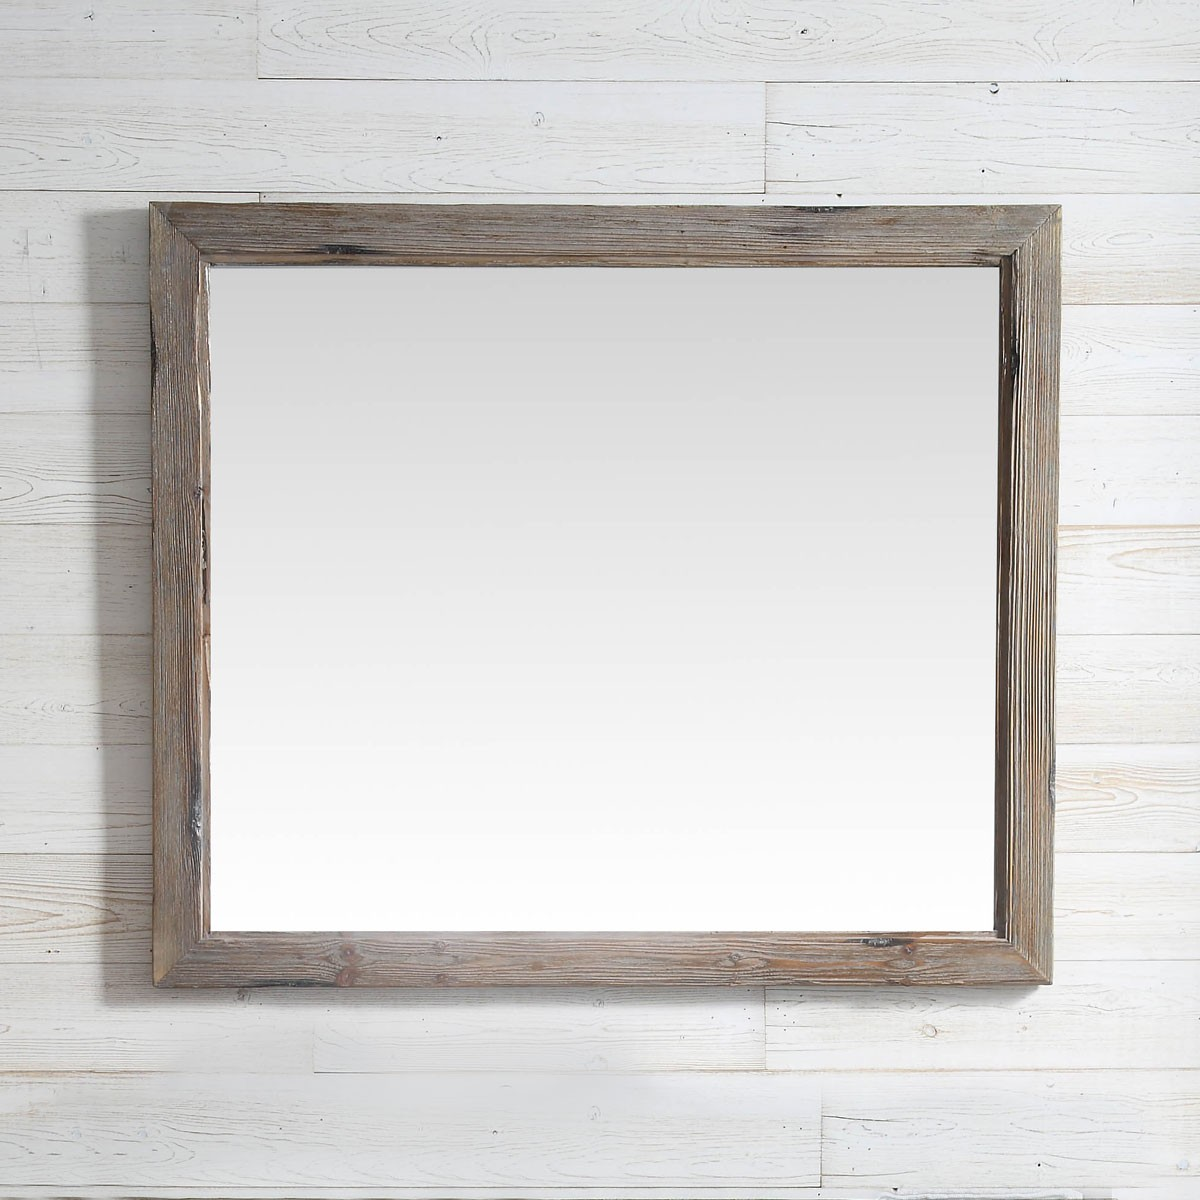 42 X 36 In Bath Vanity Décor Mirror With Fir Wood Frame Dk Wh9342